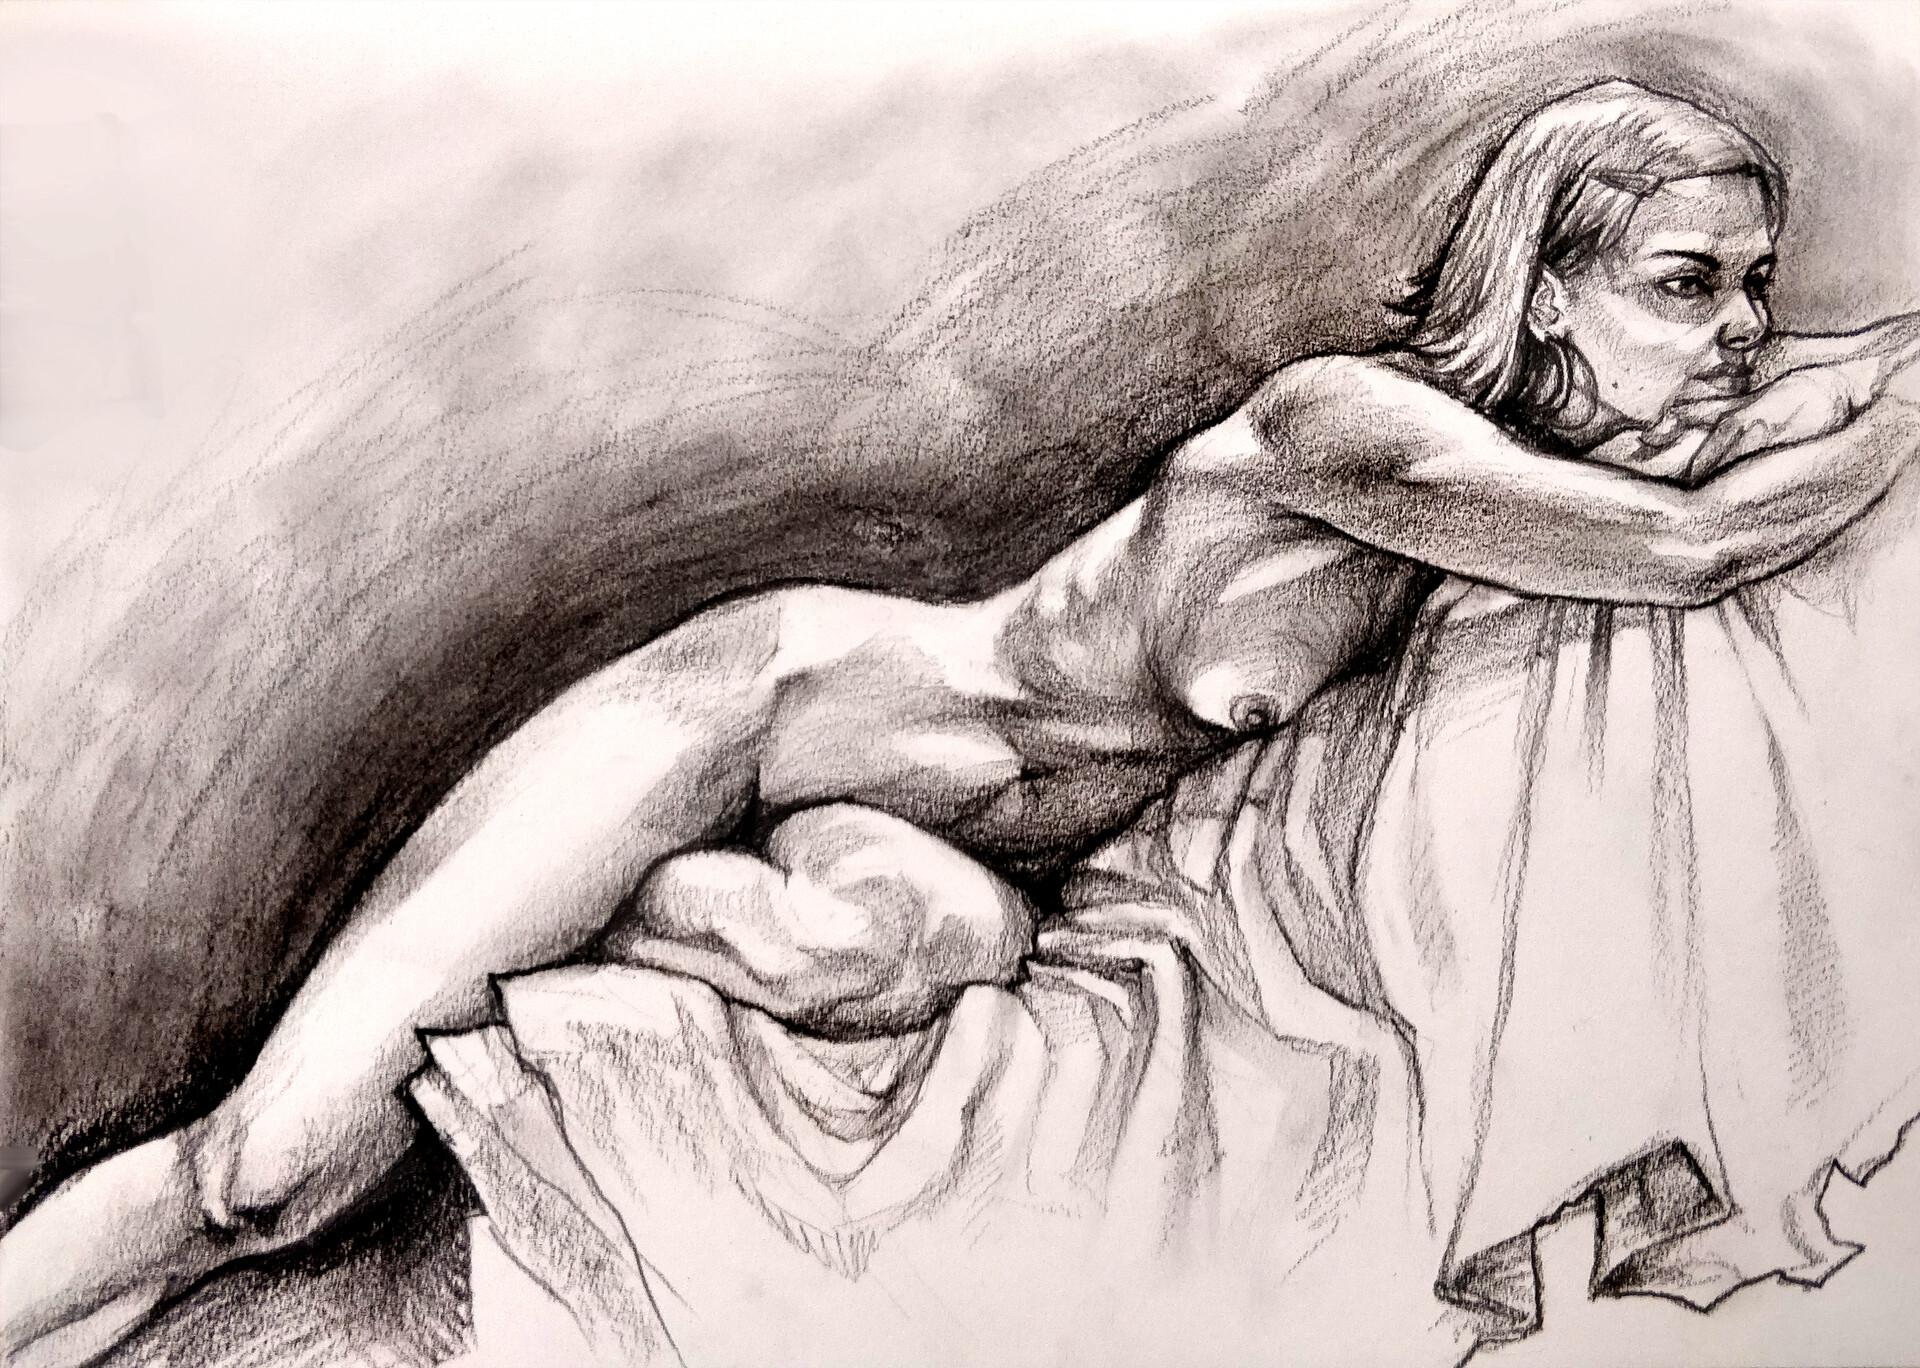 Elaine chong figuredrawing